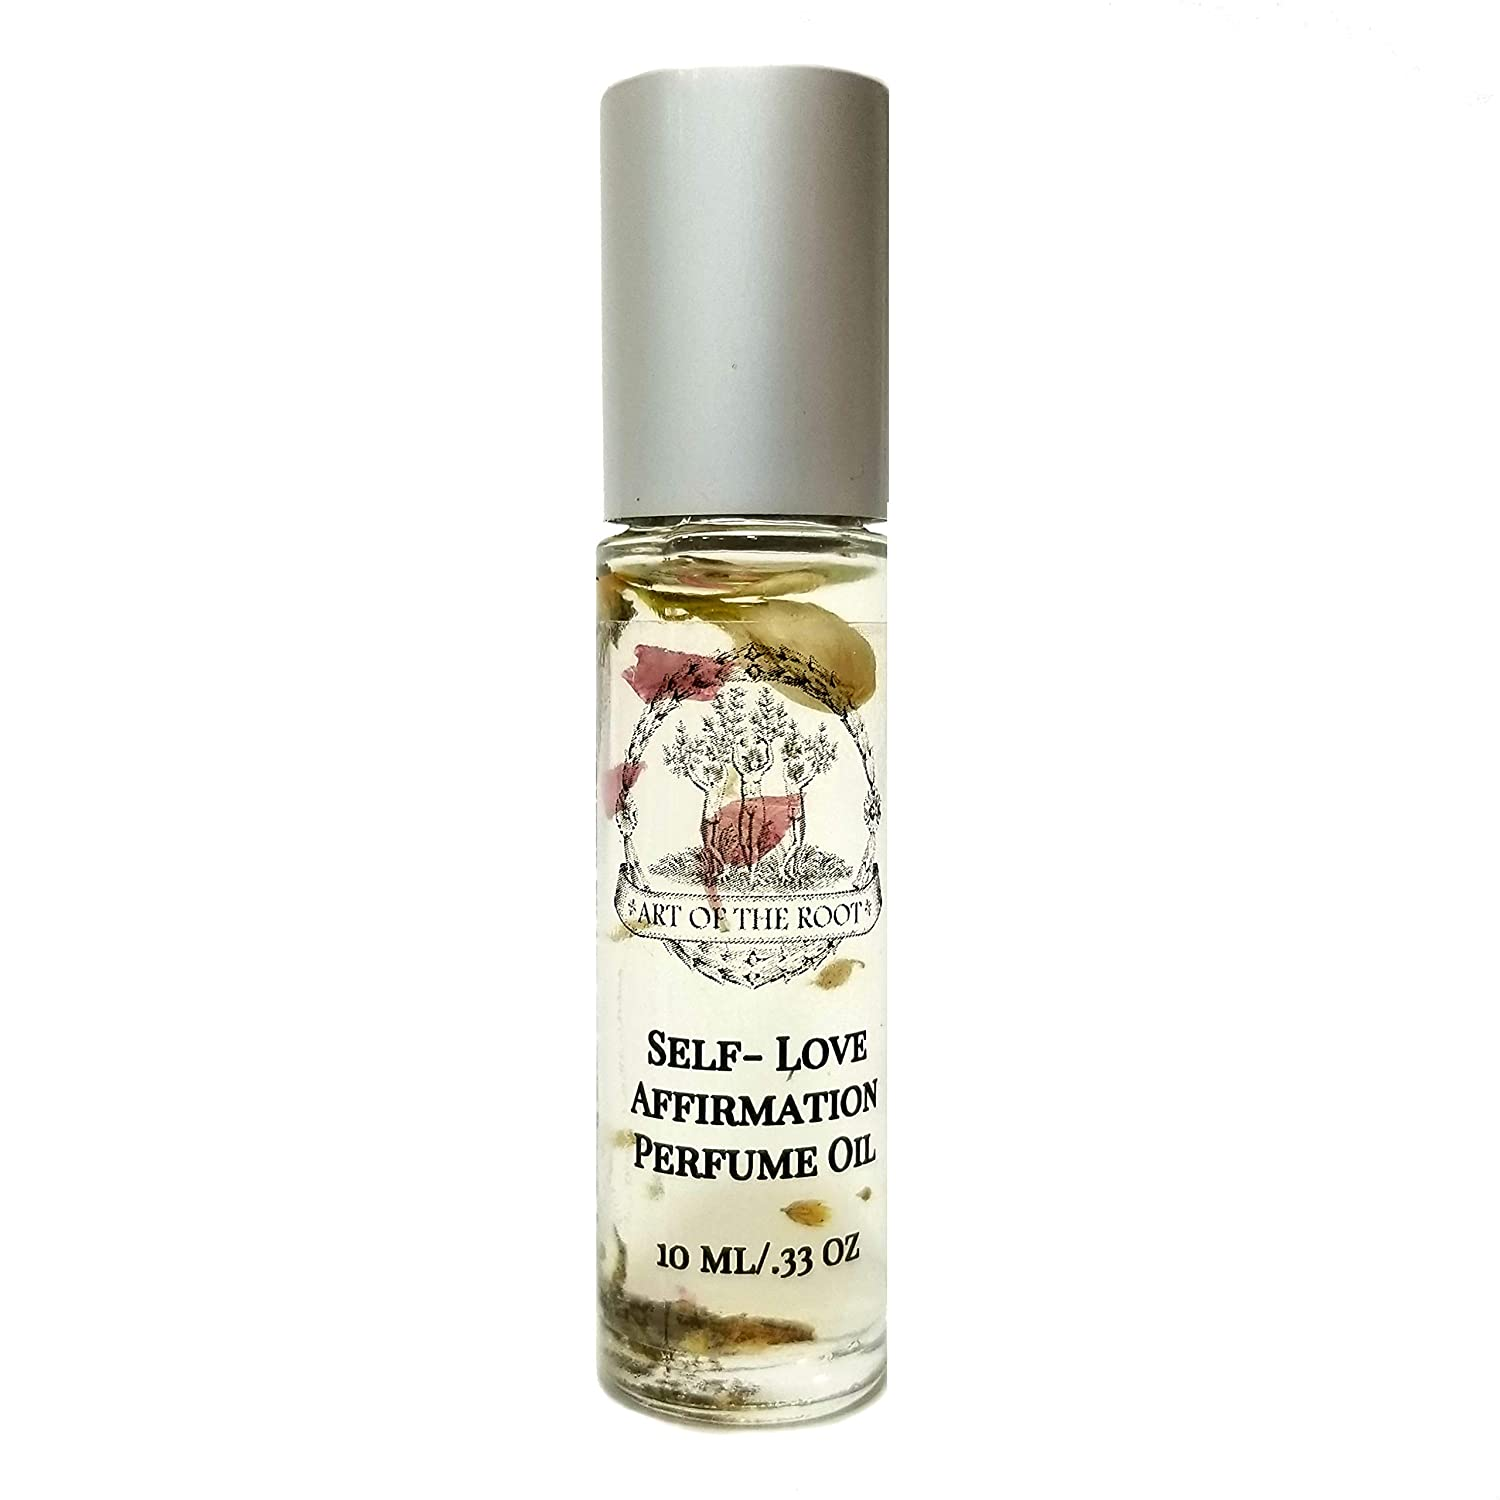 Self-Love Affirmation Roll-On Perfume Oil 1/3 oz for Healing, Loss, Acceptance & Self-Worth Wiccan Pagan Hoodoo